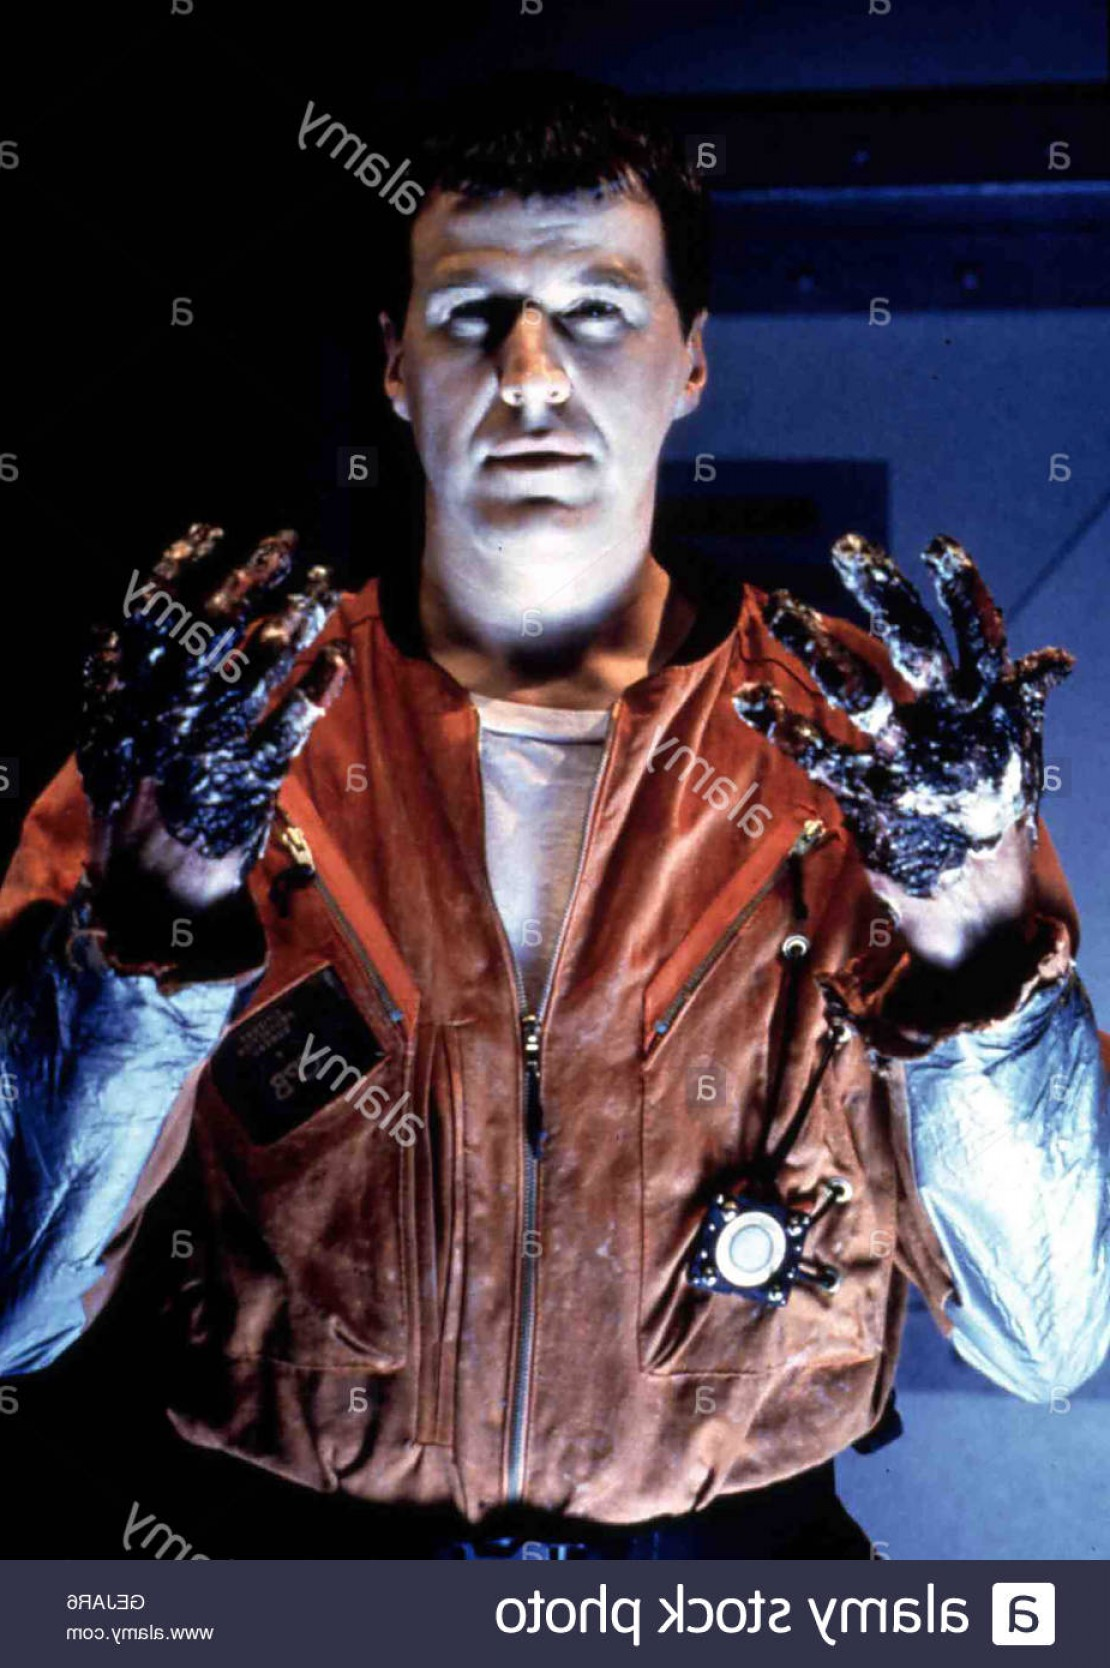 Total Recall Vector Red Jacket: Stock Photo Szene Local Caption Total Recall Machine Dreams Total Recall